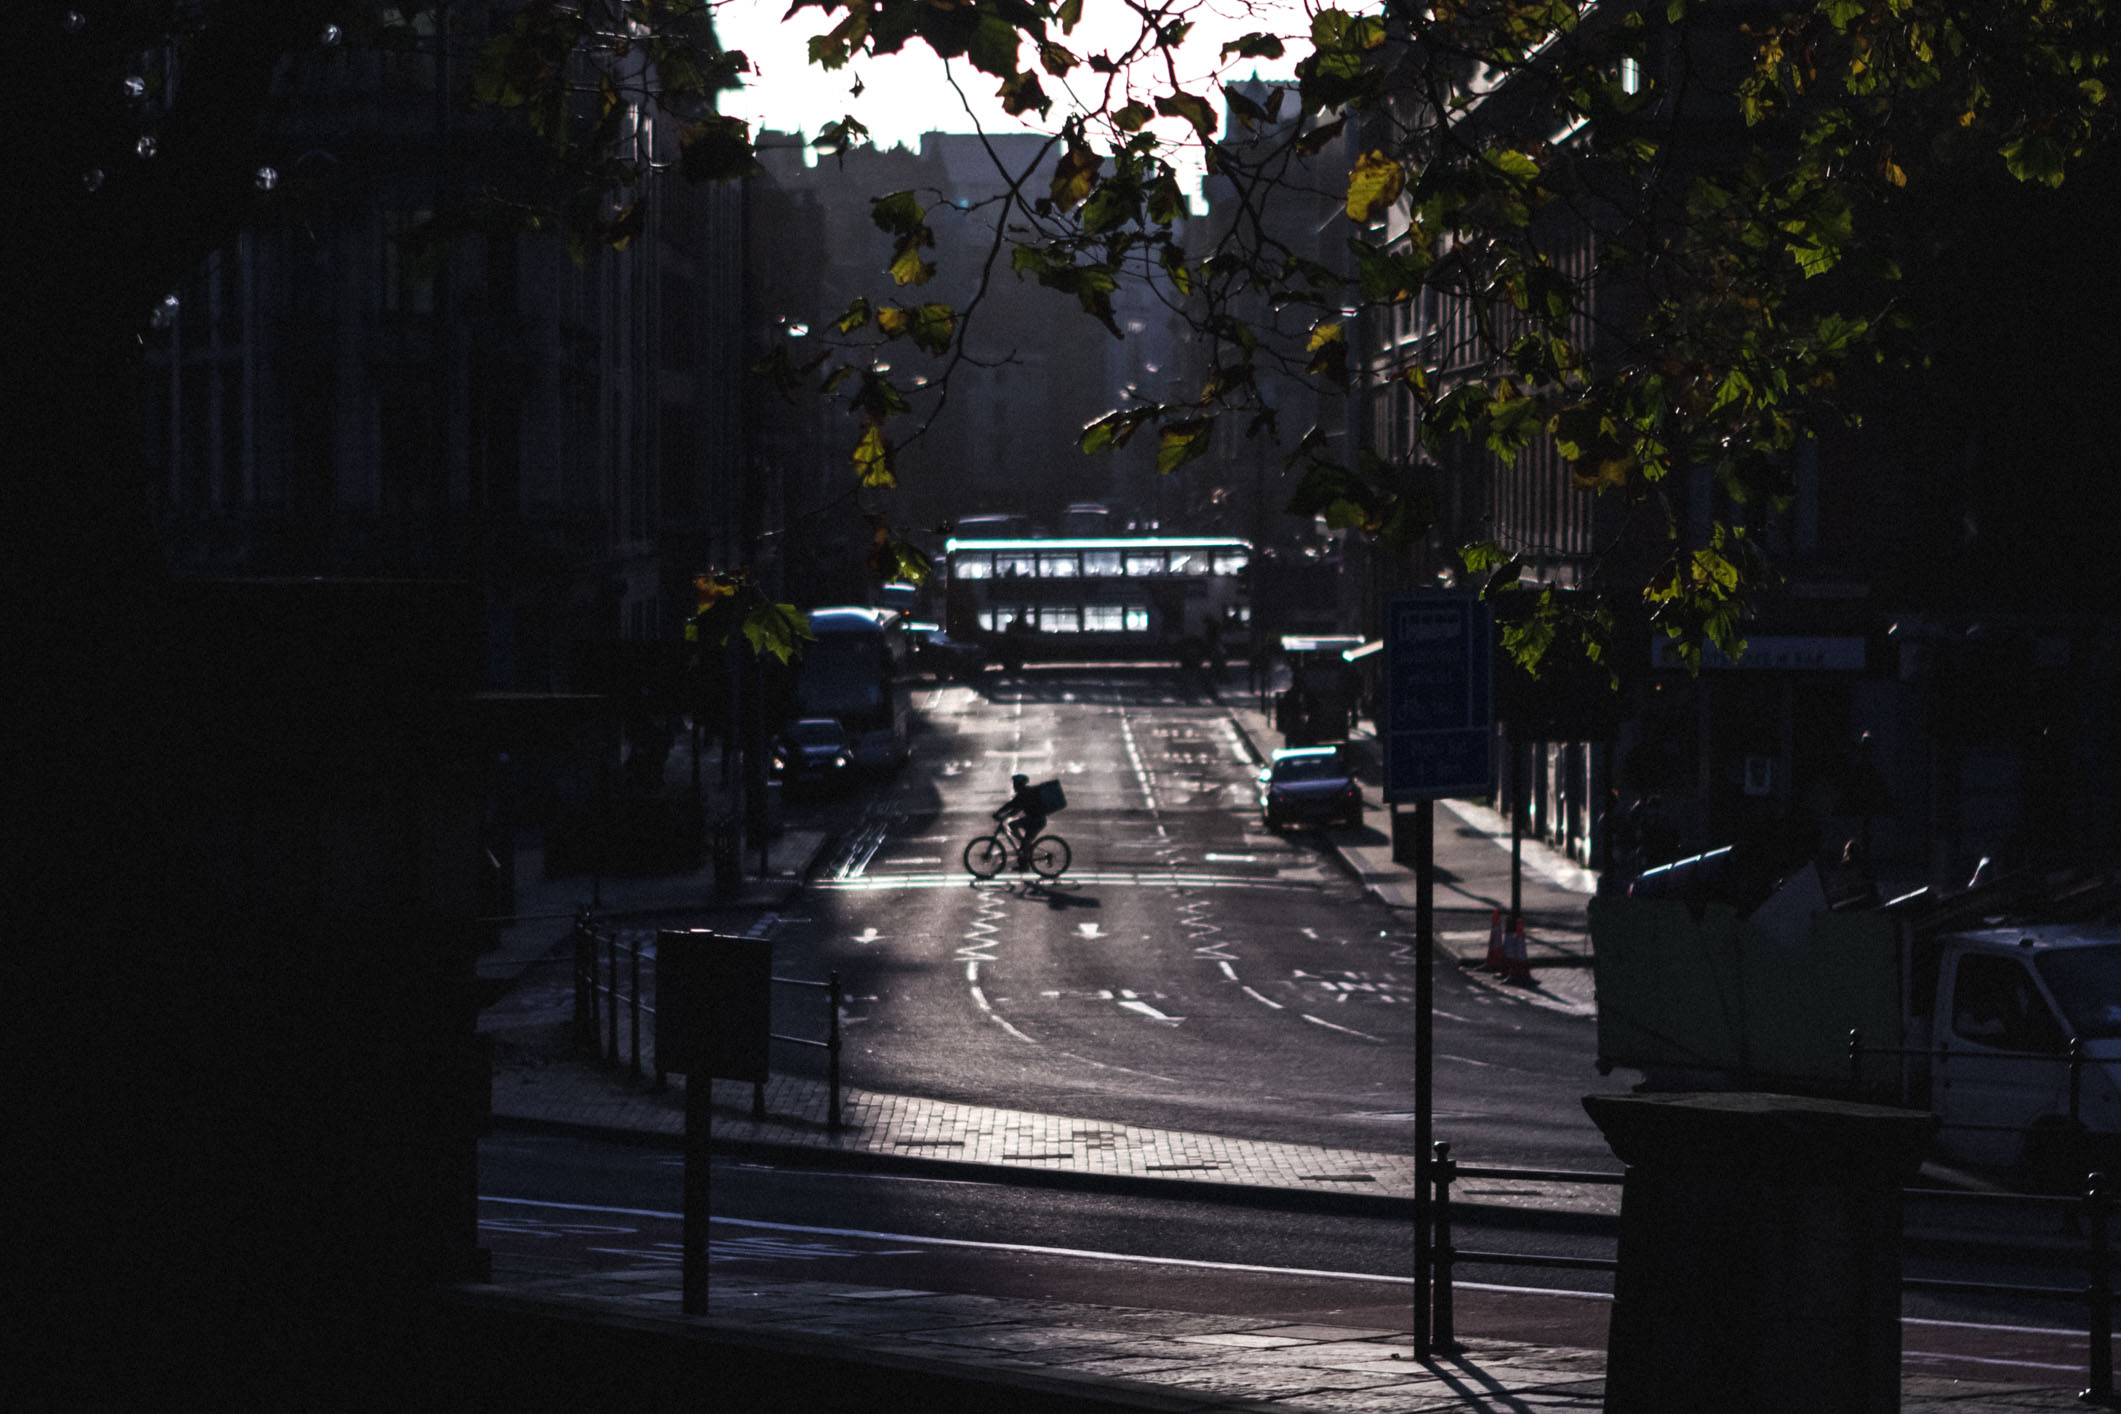 Photo by Pascal Sommer - Victoria Street, Liverpool